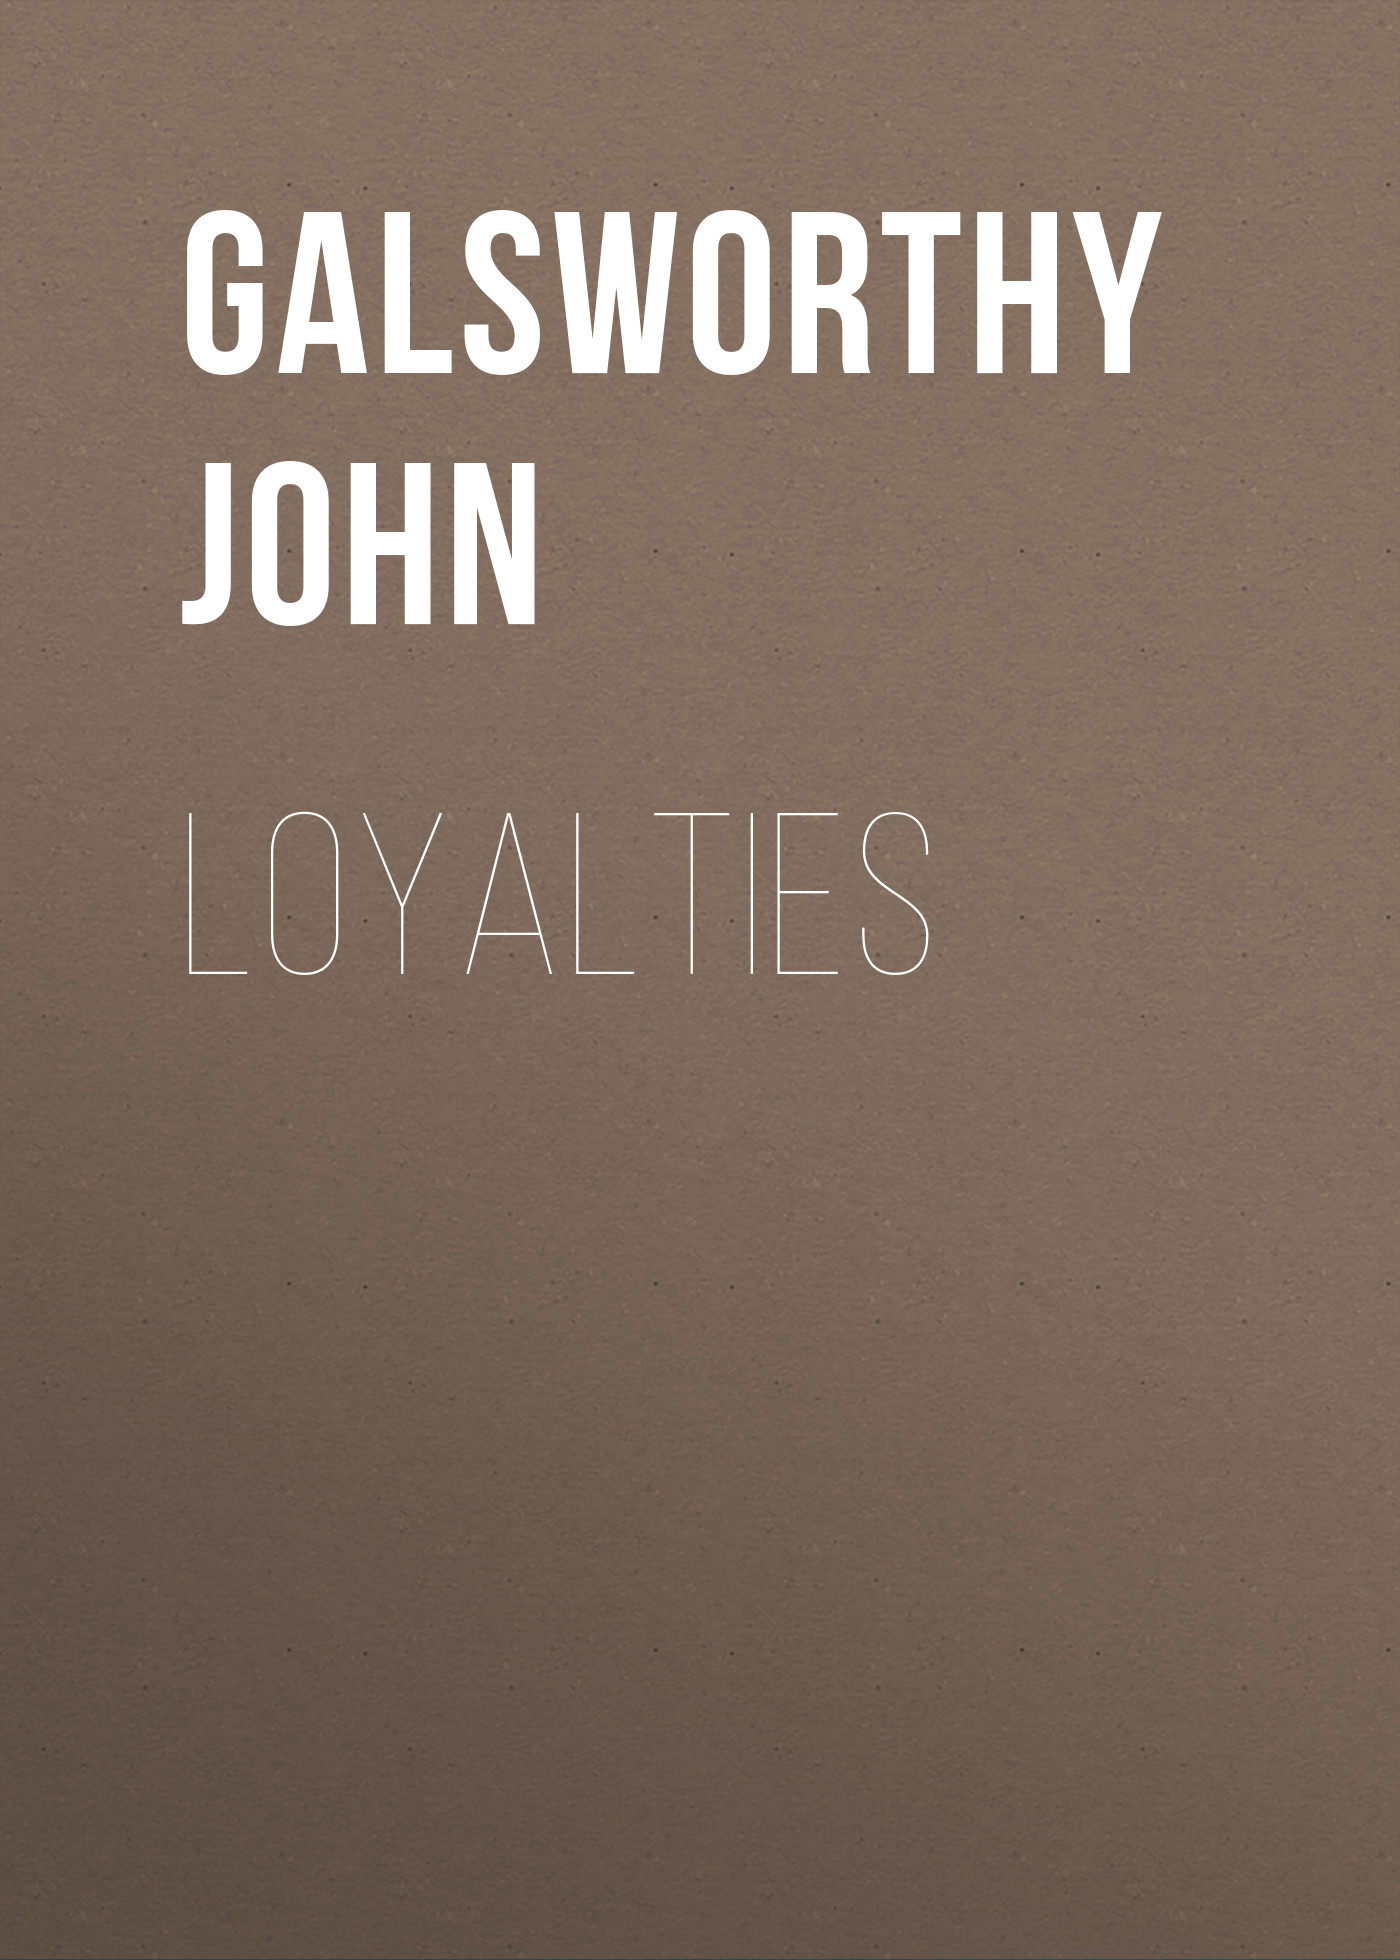 лучшая цена Galsworthy John Loyalties